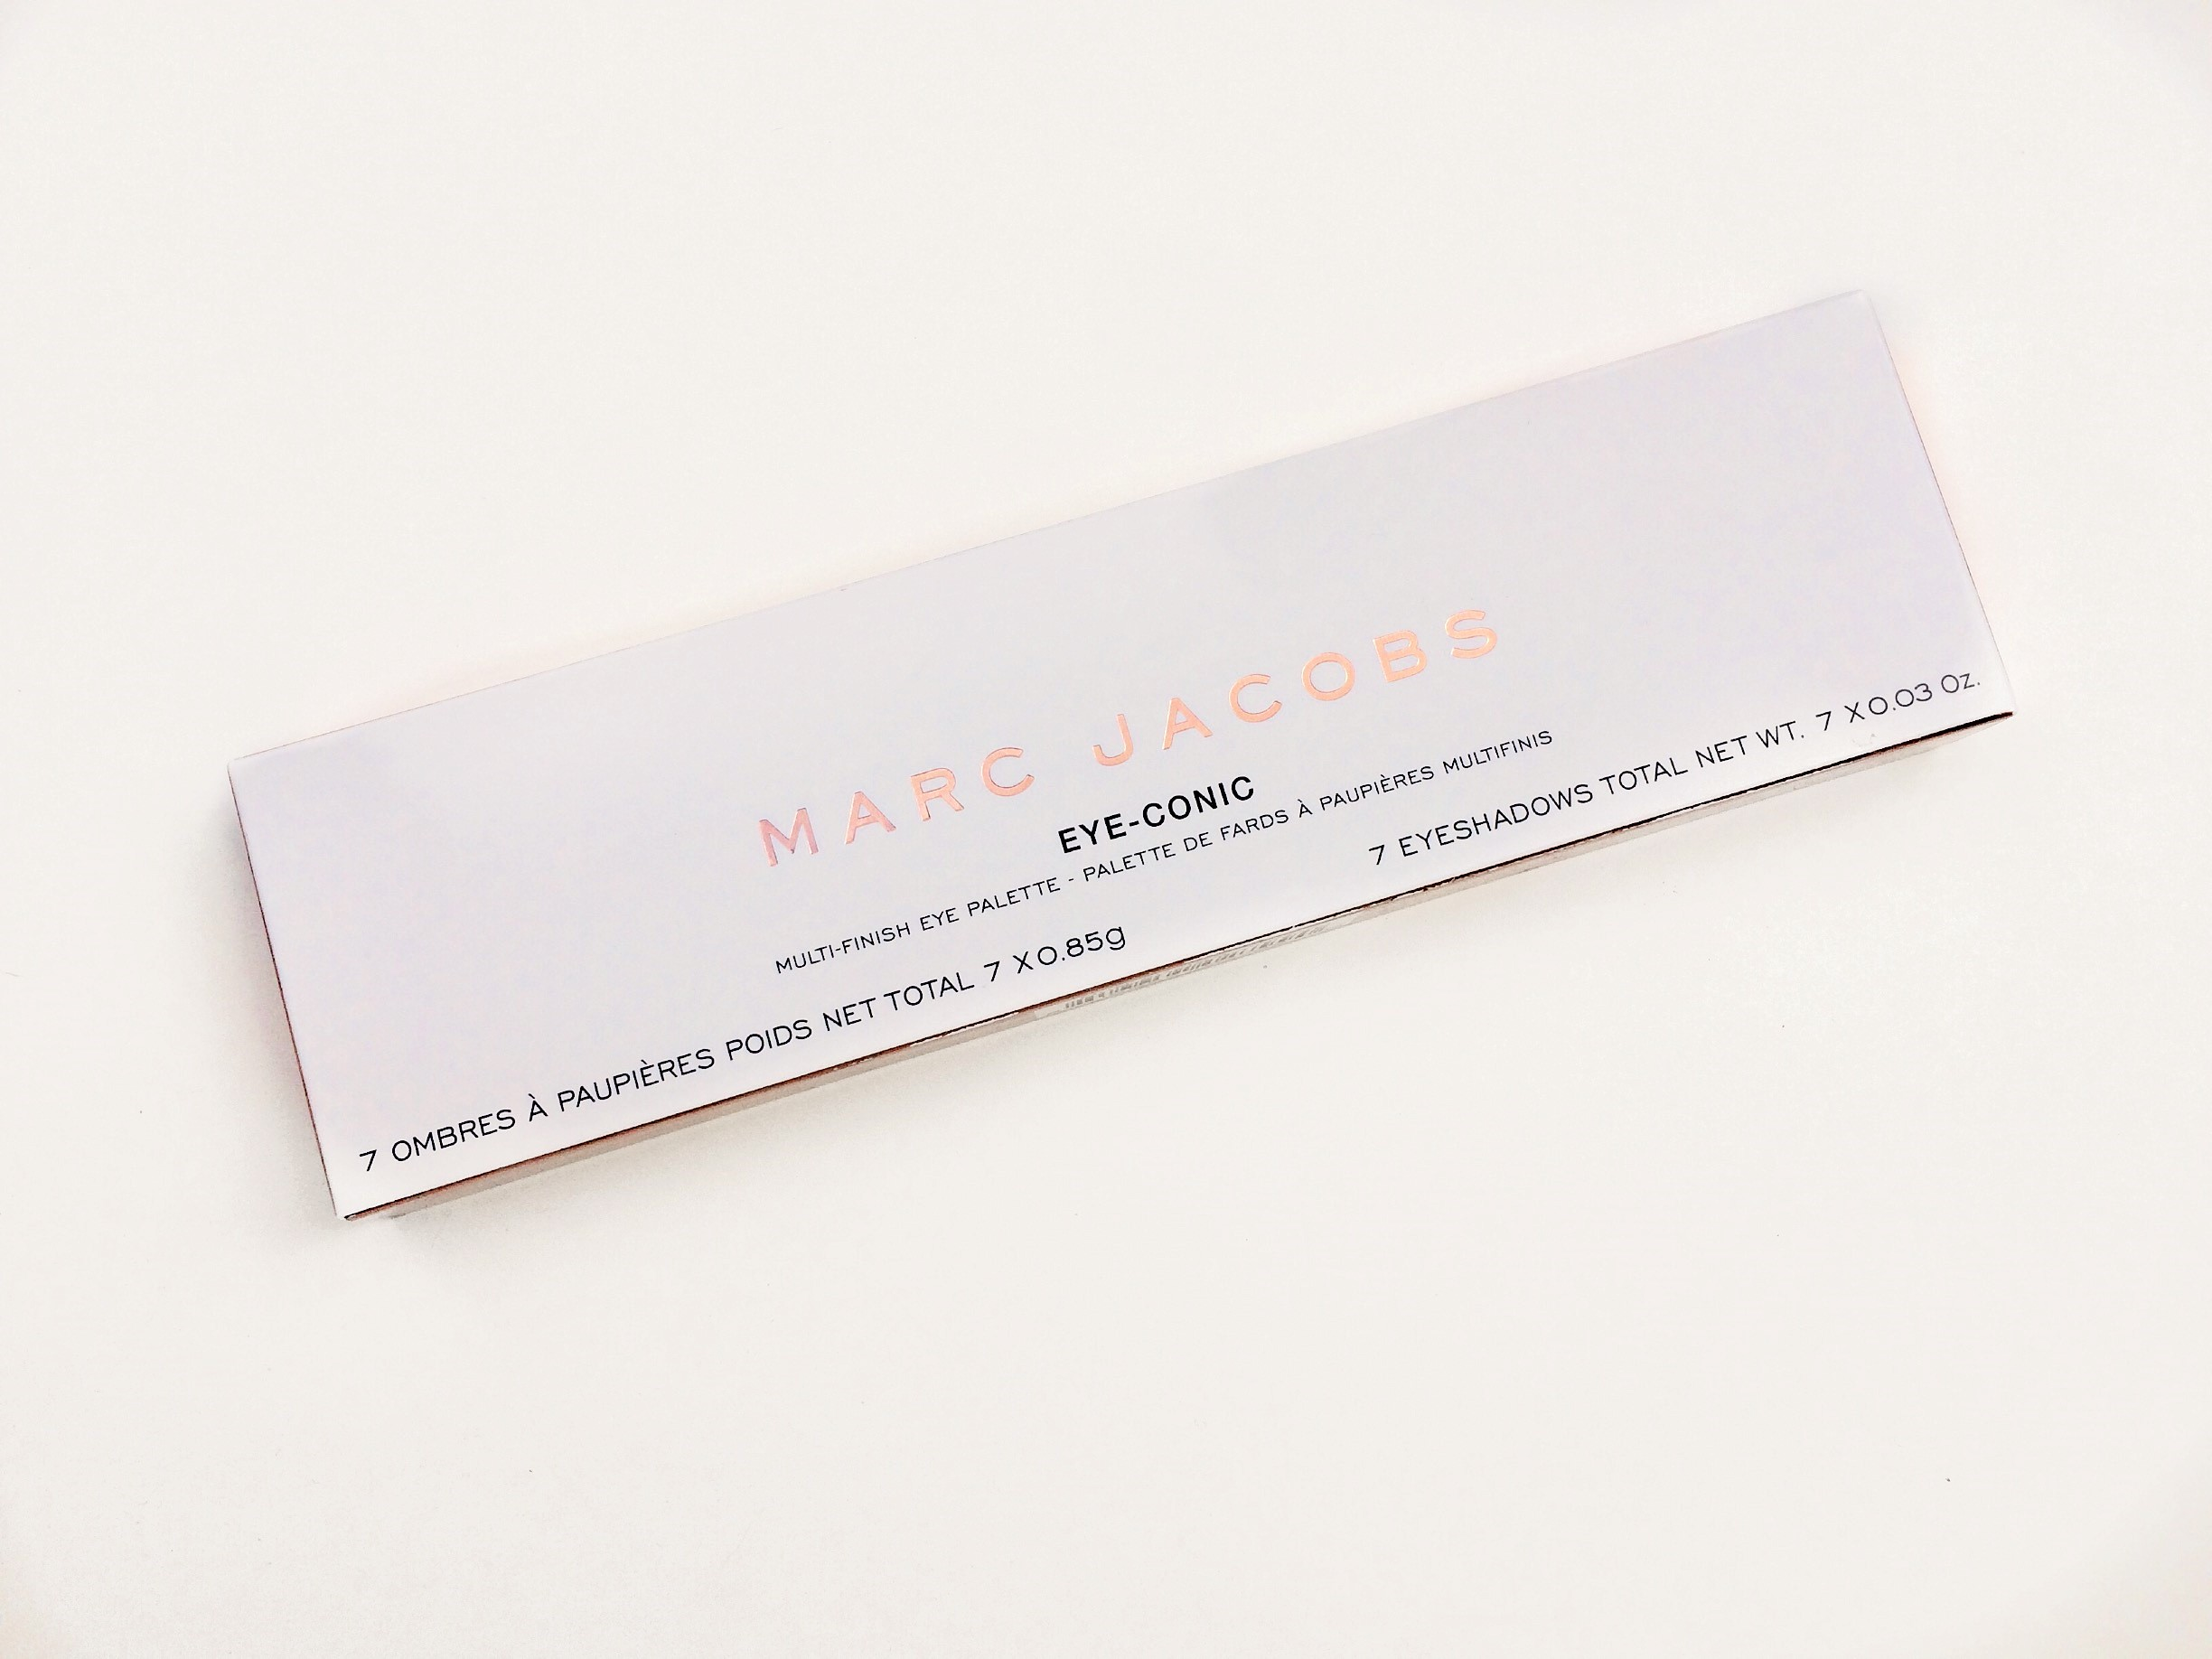 Marc Jacobs Fantascene Eye-Conic Multi-Finish Eyeshadow Palette Review (8)